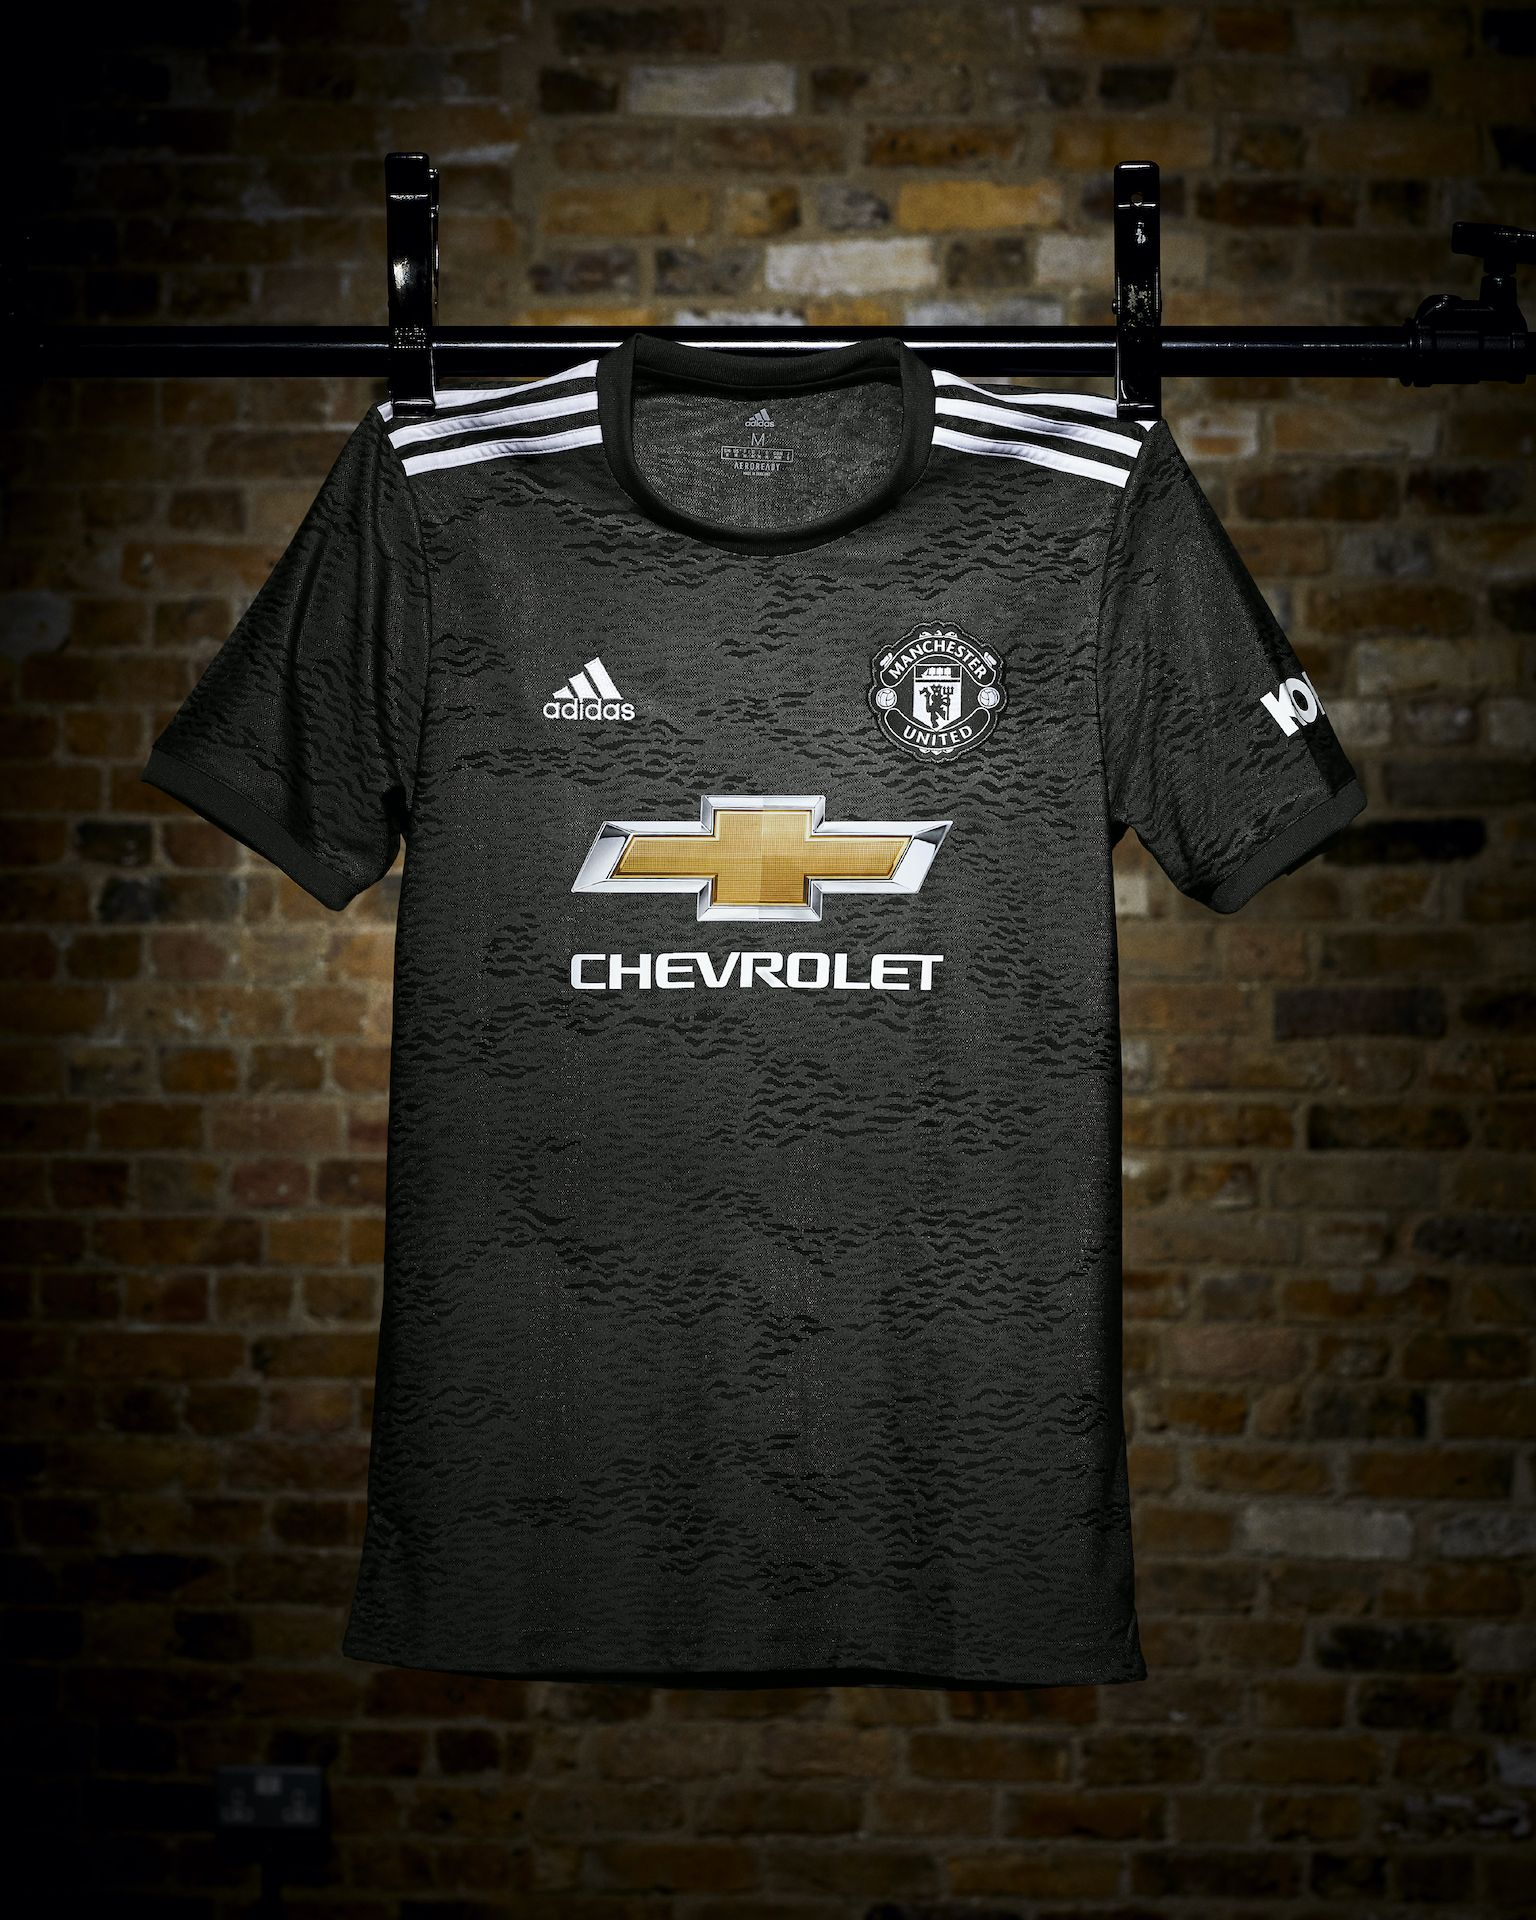 manchester united launch 2020 21 away kit pursuit of dopeness in 2020 manchester united manchester united away kit football outfits manchester united launch 2020 21 away